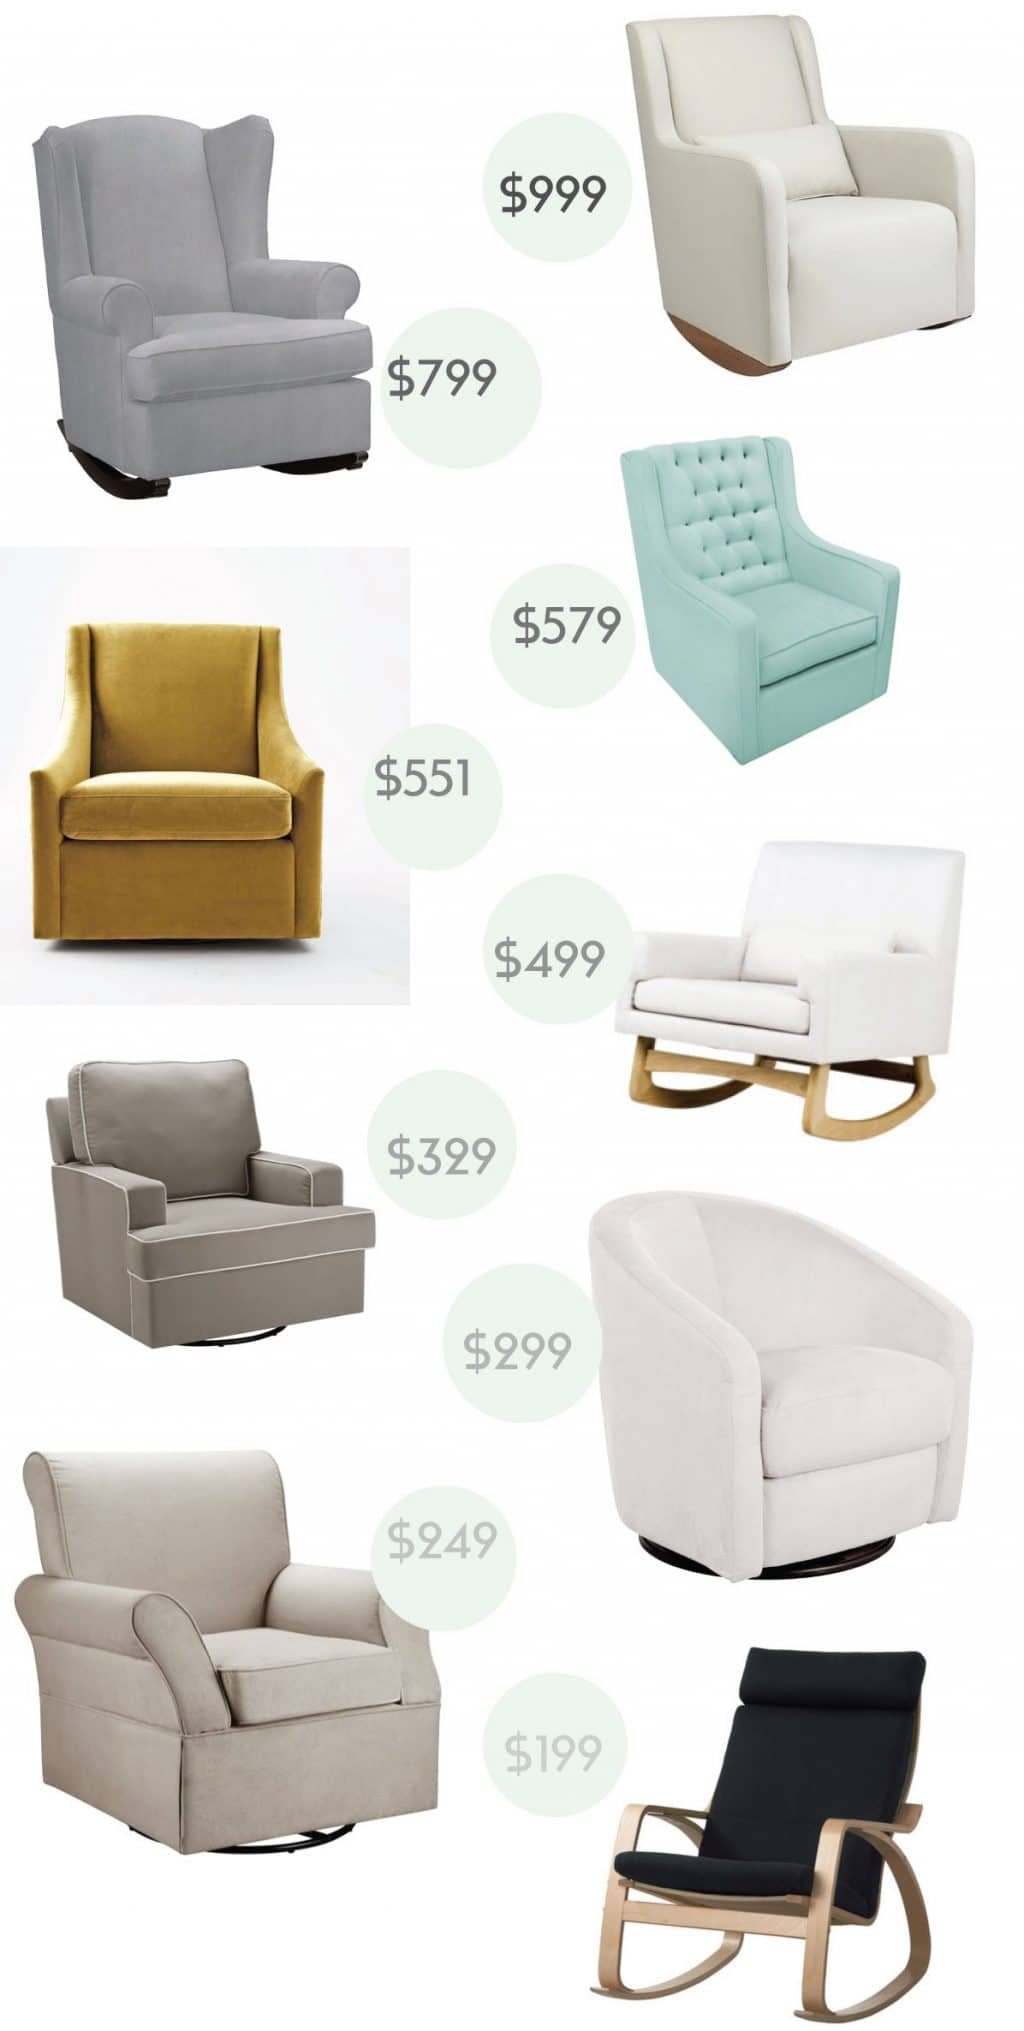 agliderforeverybudget. a nursery glider  rocker at every budget  chris loves julia